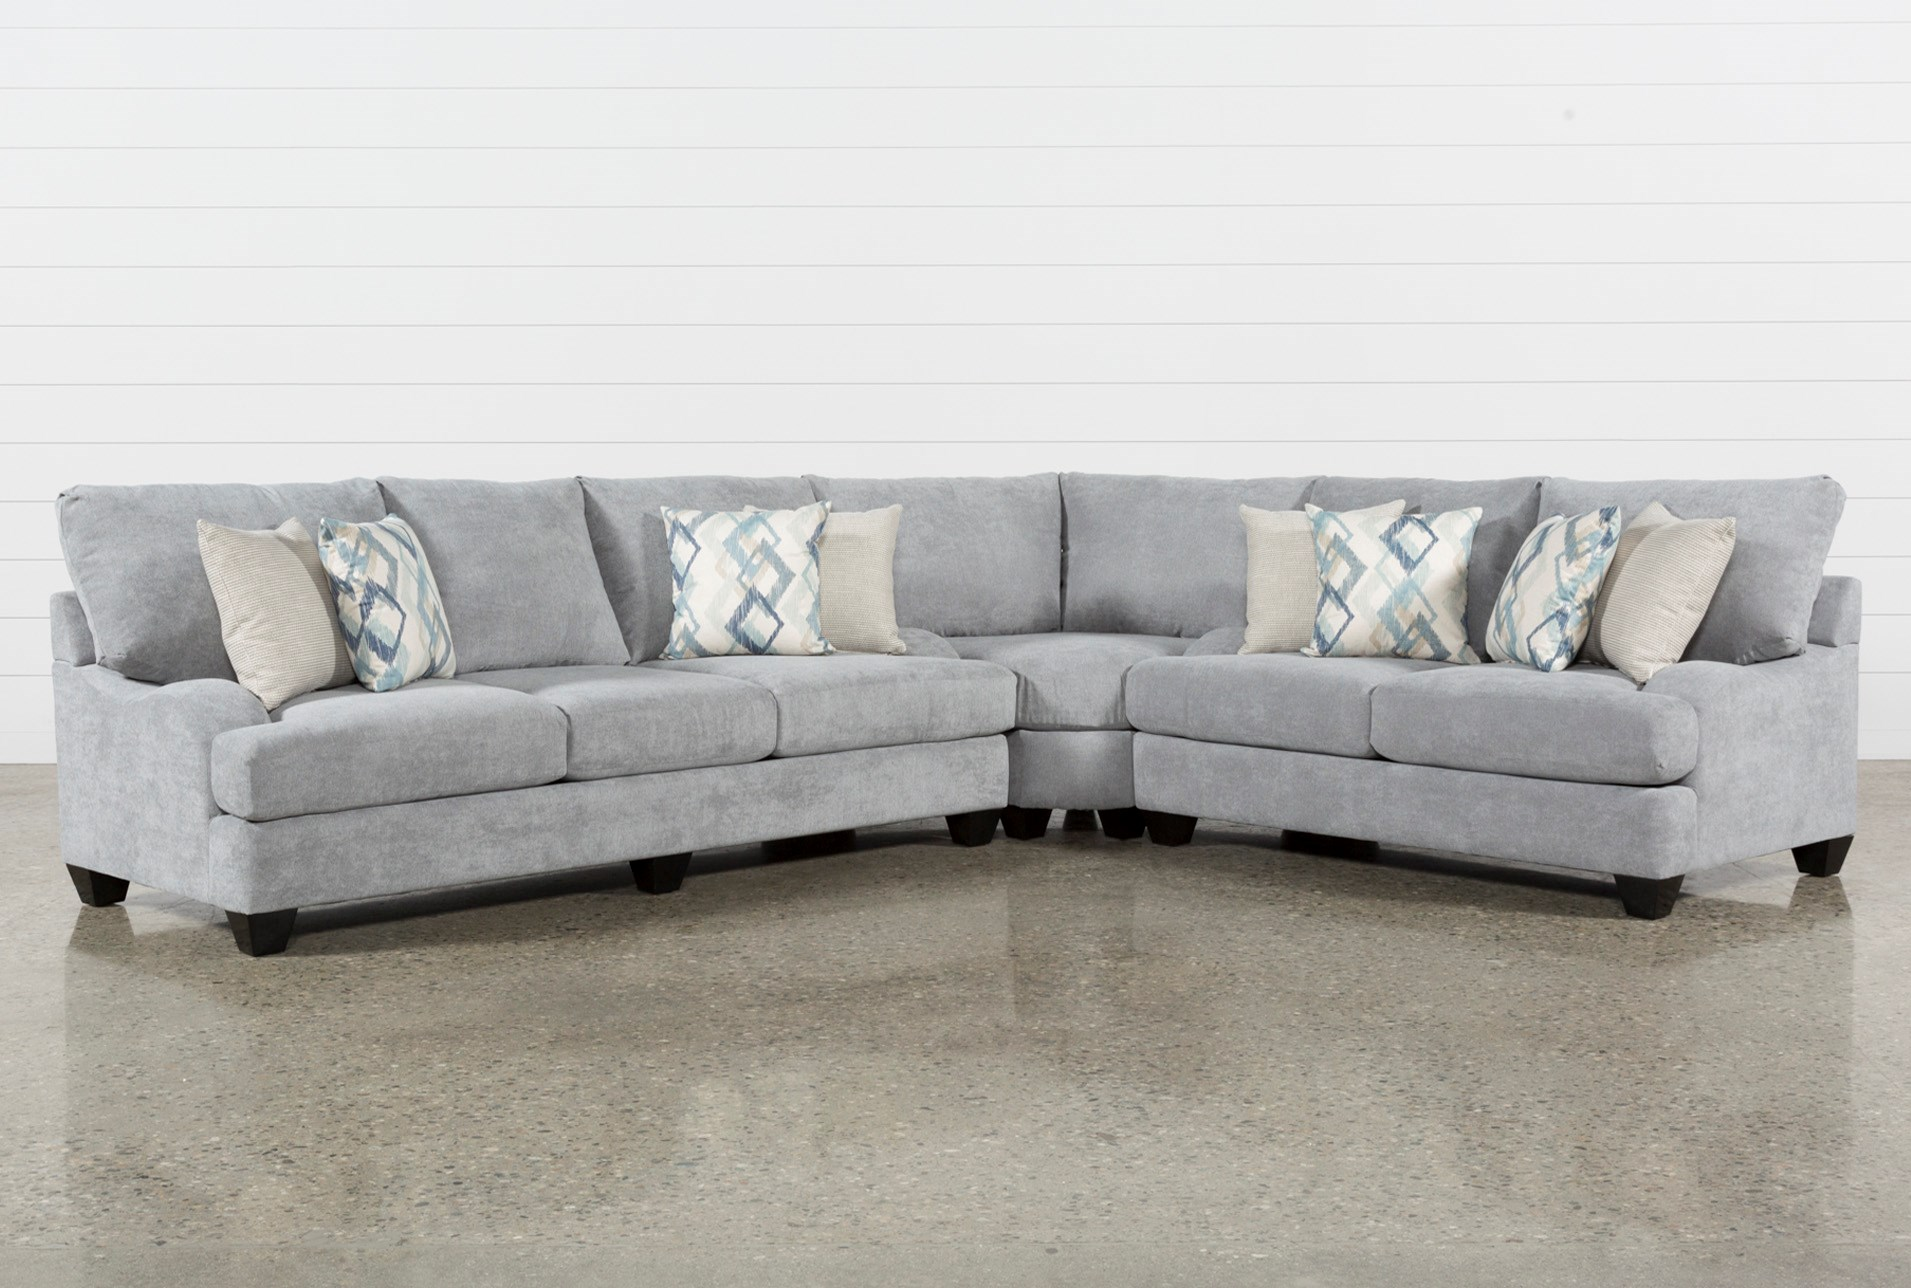 Sierra foam ii 3 piece sectional qty 1 has been successfully added to your cart